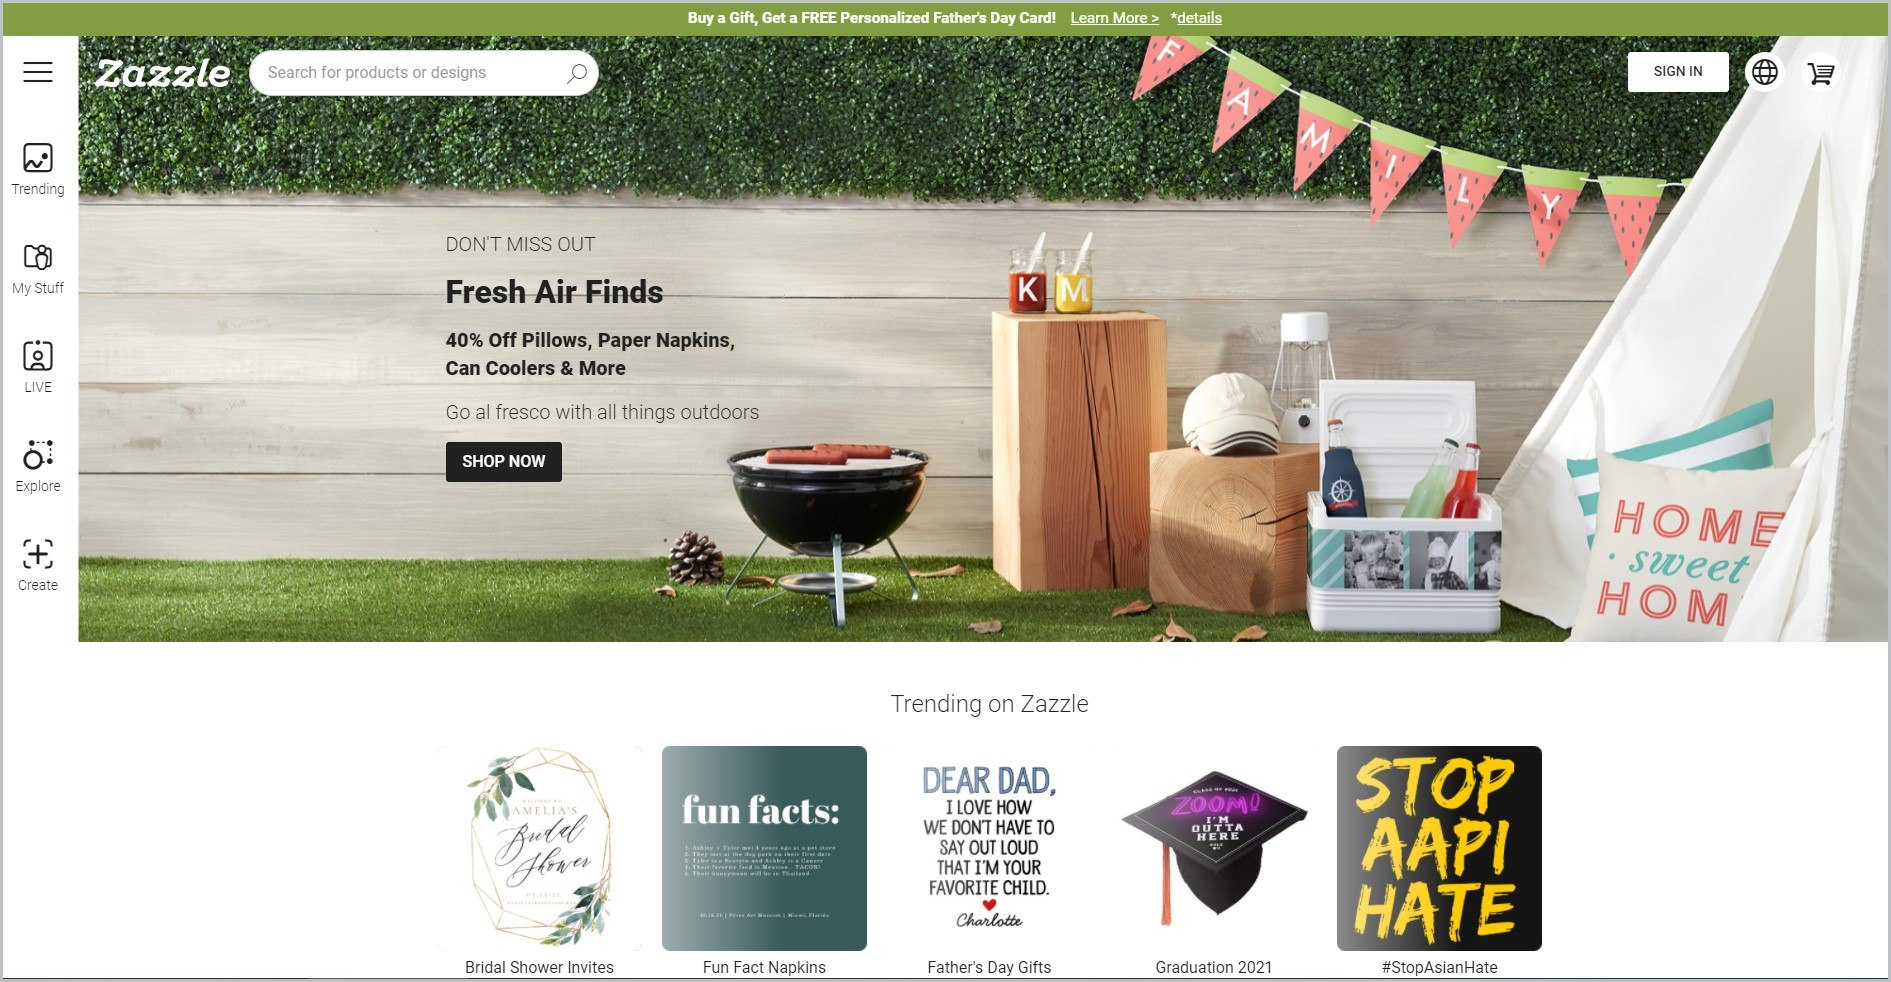 screenshot of Zazzle homepage with lime green announcement bar, and an image of a backyard picnic setup